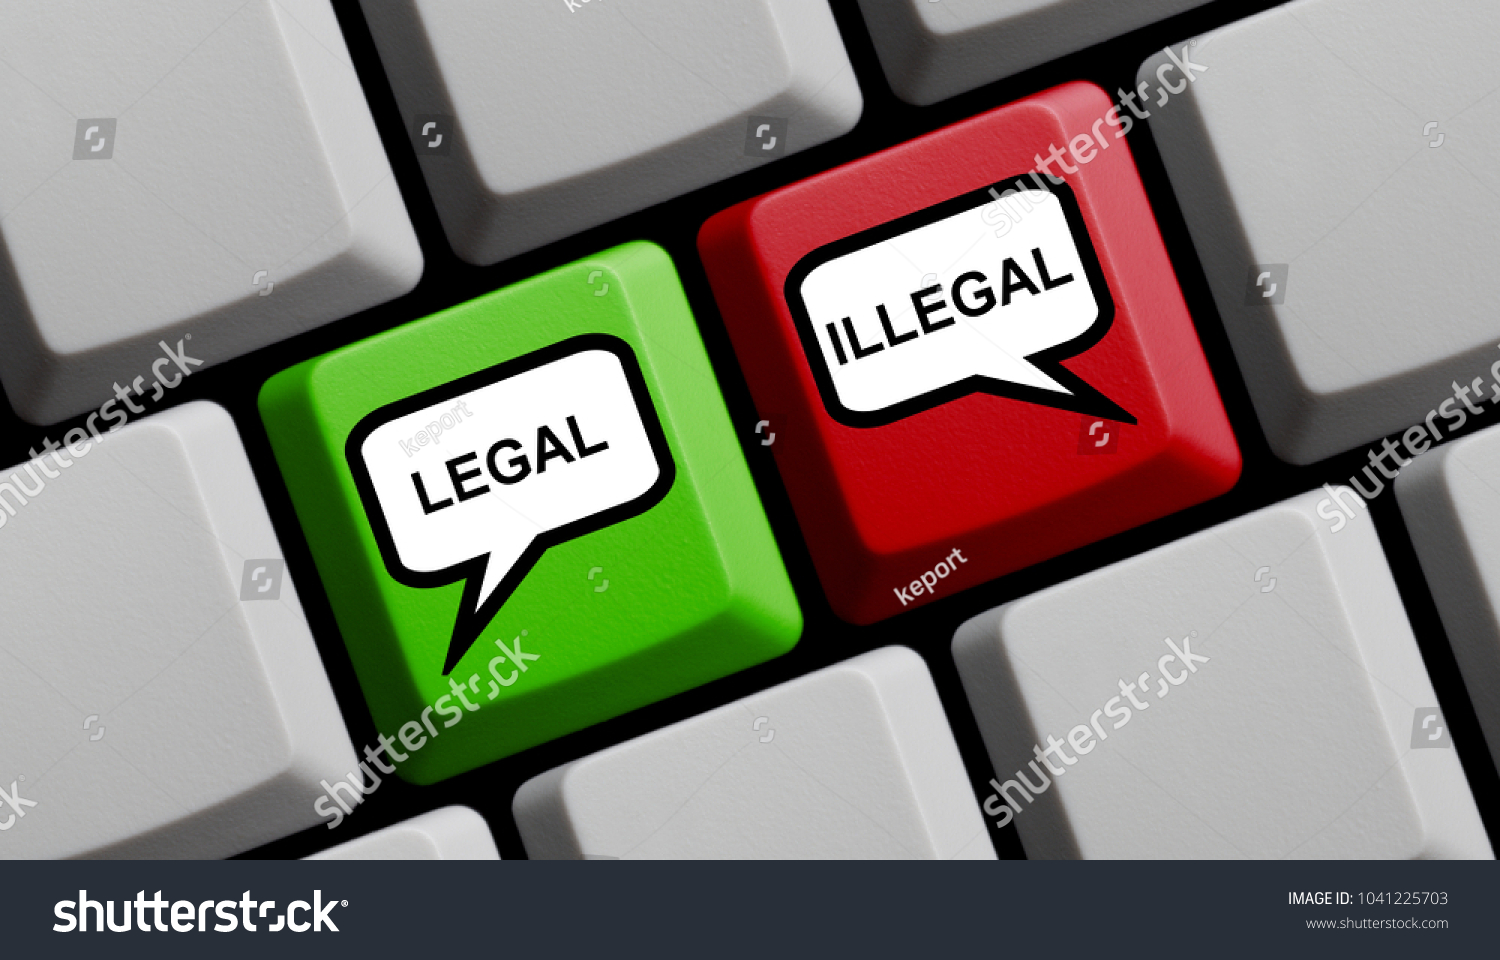 Computer keyboard speech bubble symbols on stock photo 1041225703 computer keyboard with speech bubble symbols on red and green key showing legal or illegal biocorpaavc Image collections